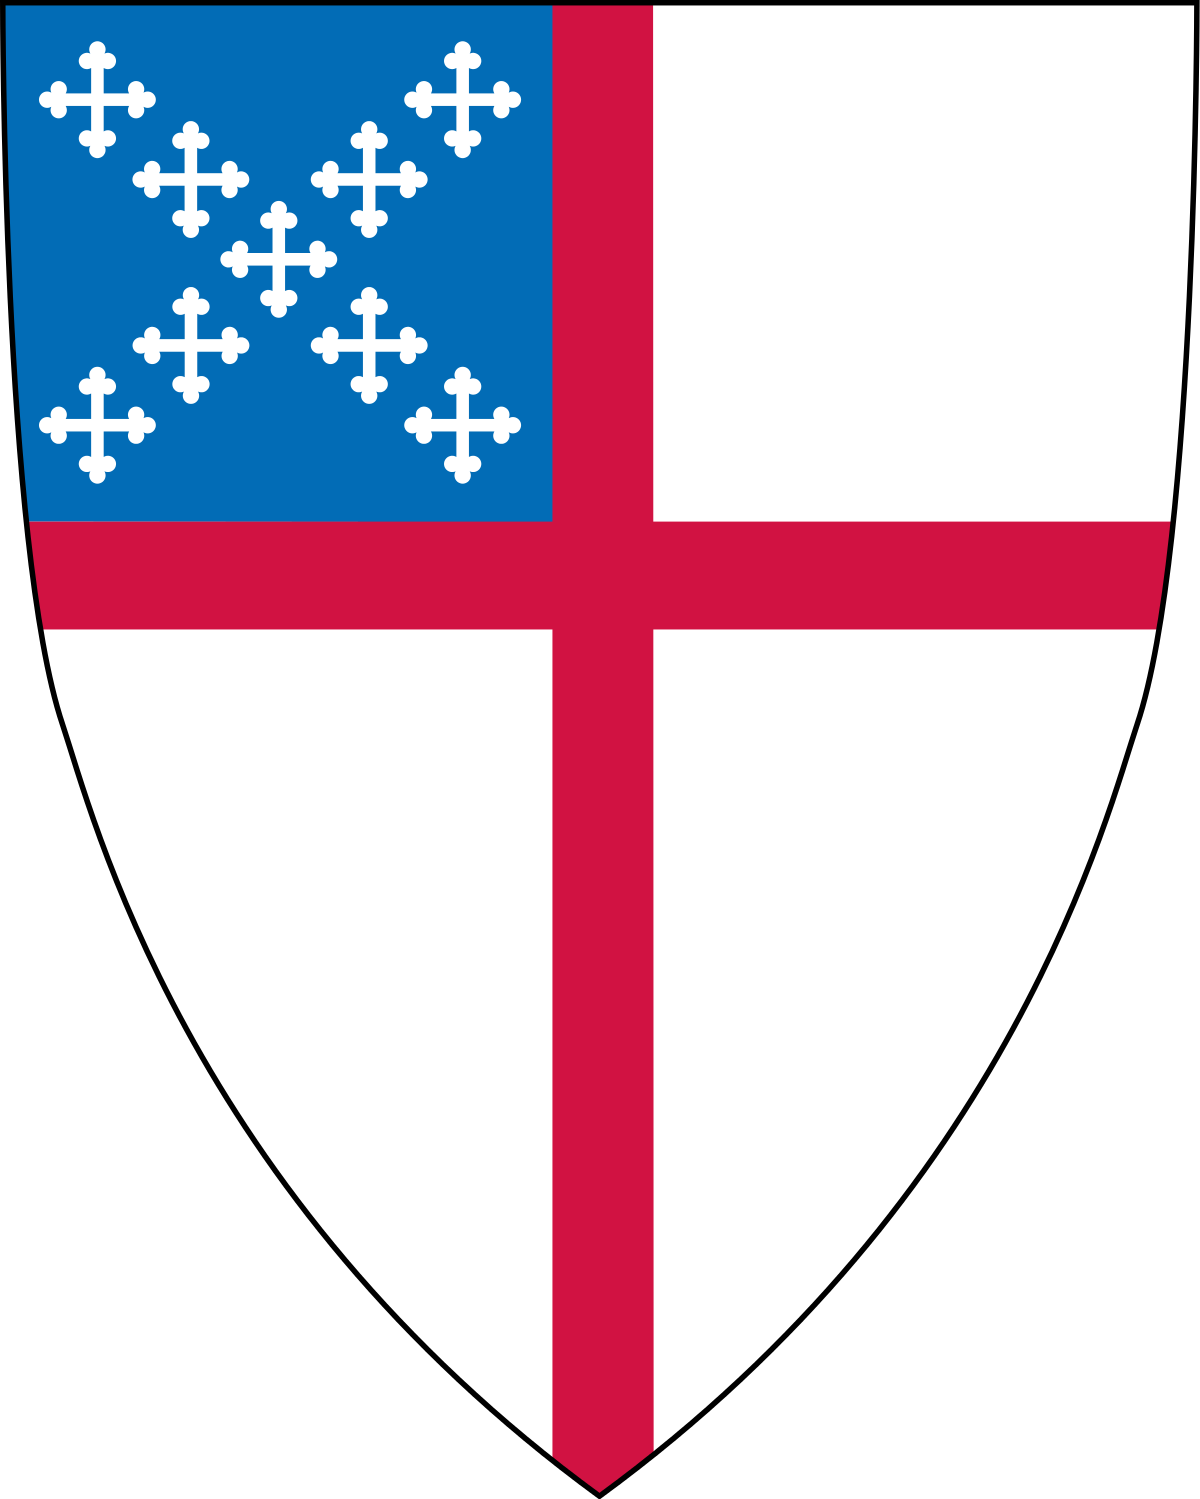 School symbol clipart black and white stock Episcopal Church (United States) - Wikipedia black and white stock